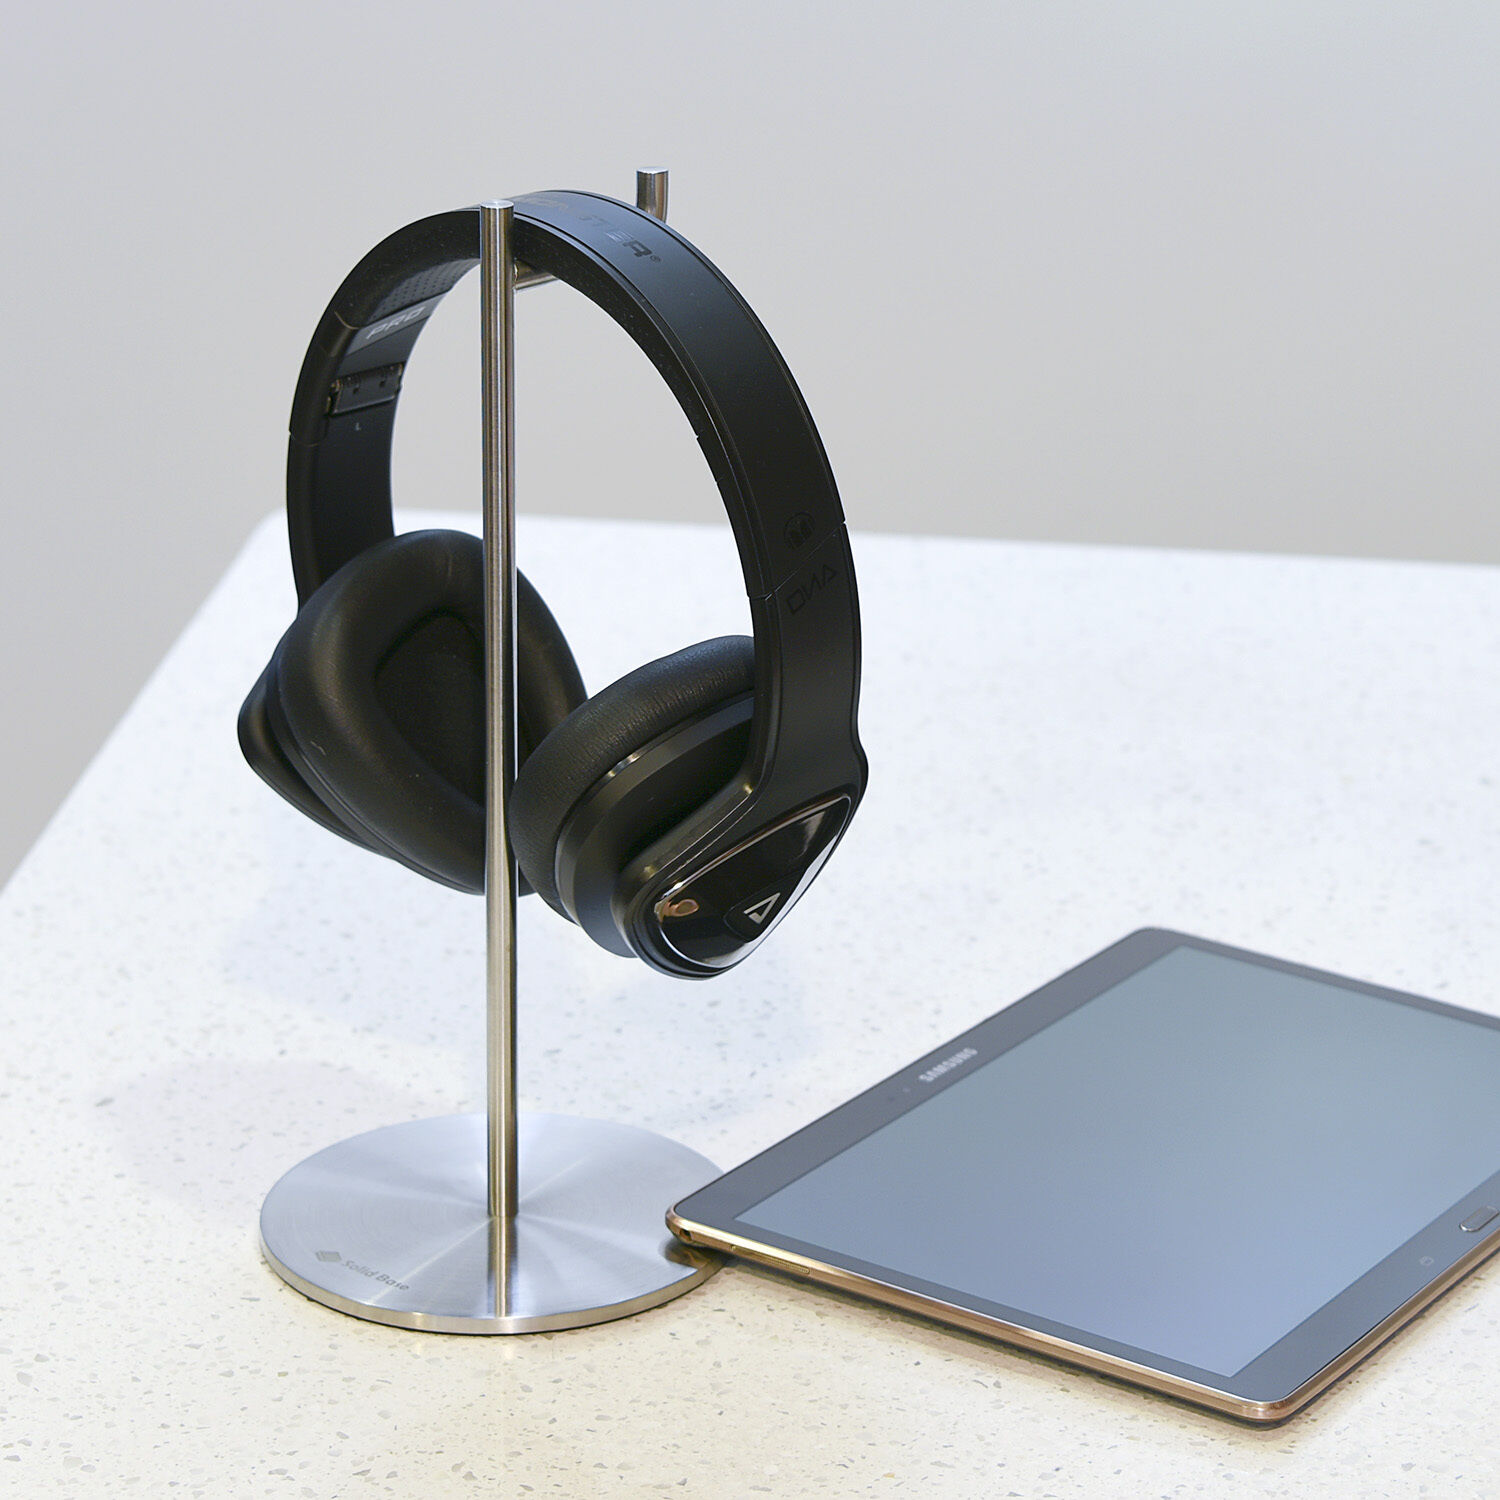 how to make a headset stand